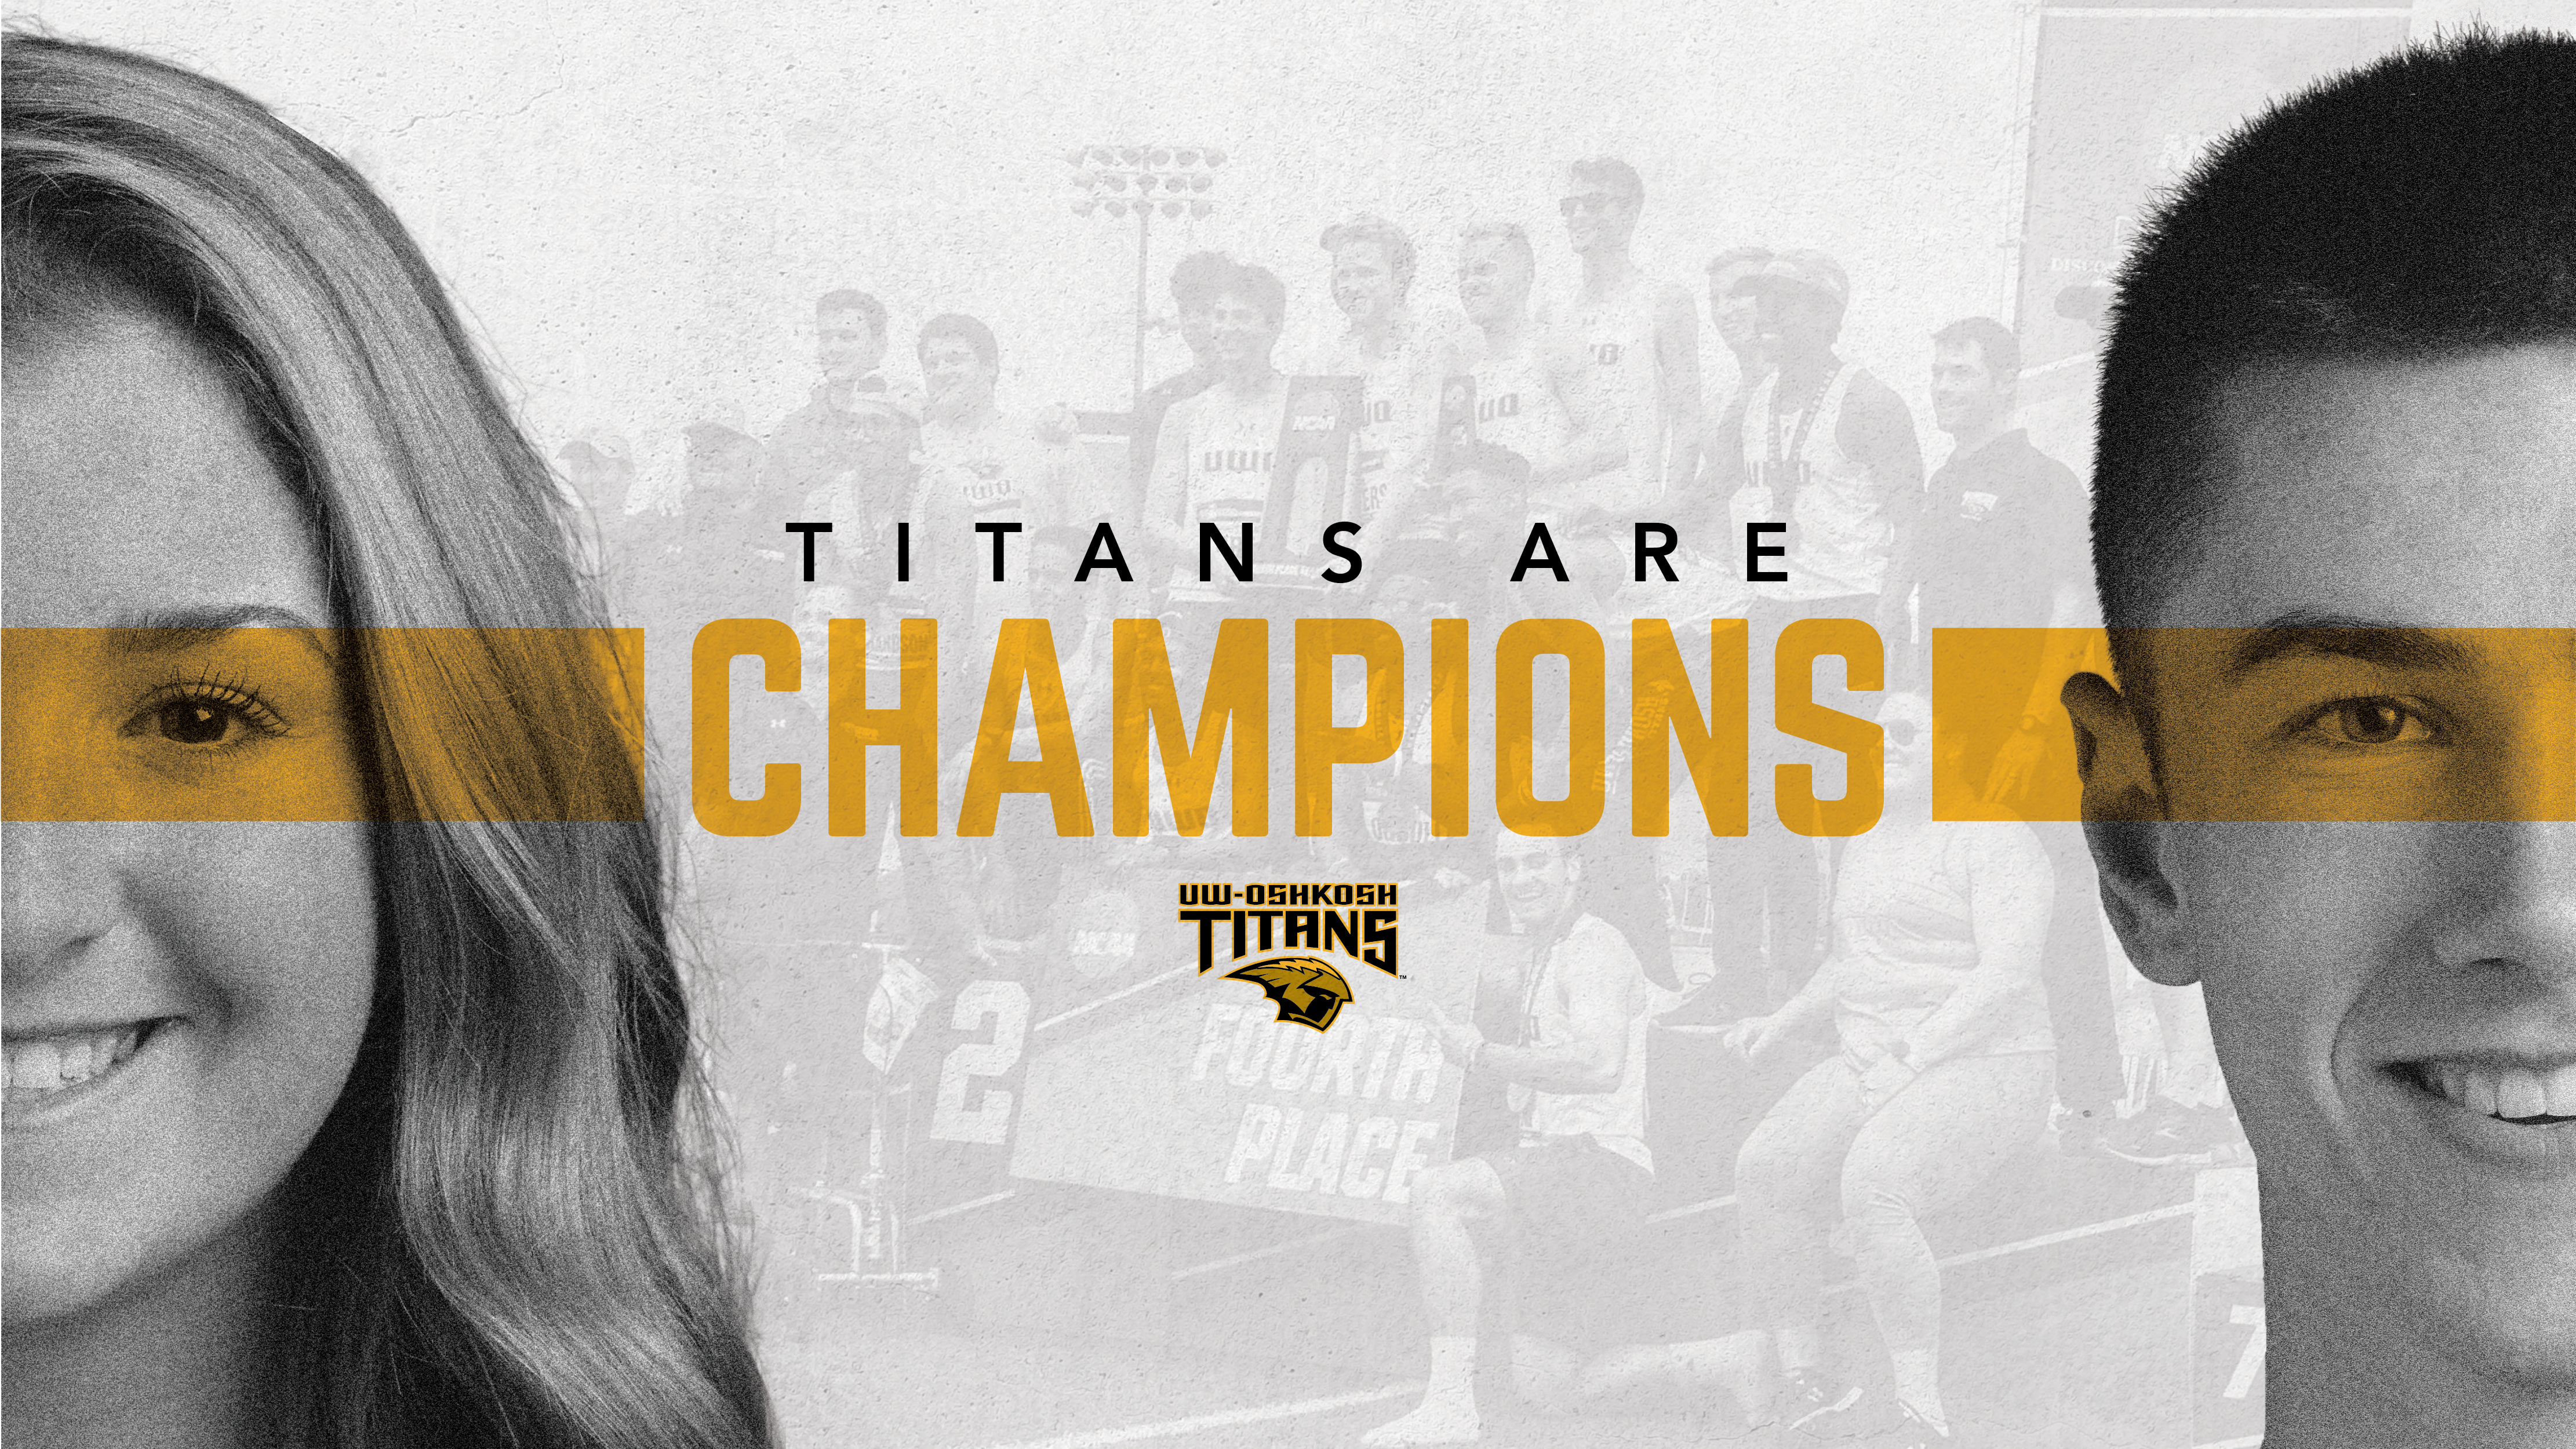 Titans Are Champions: A year in review